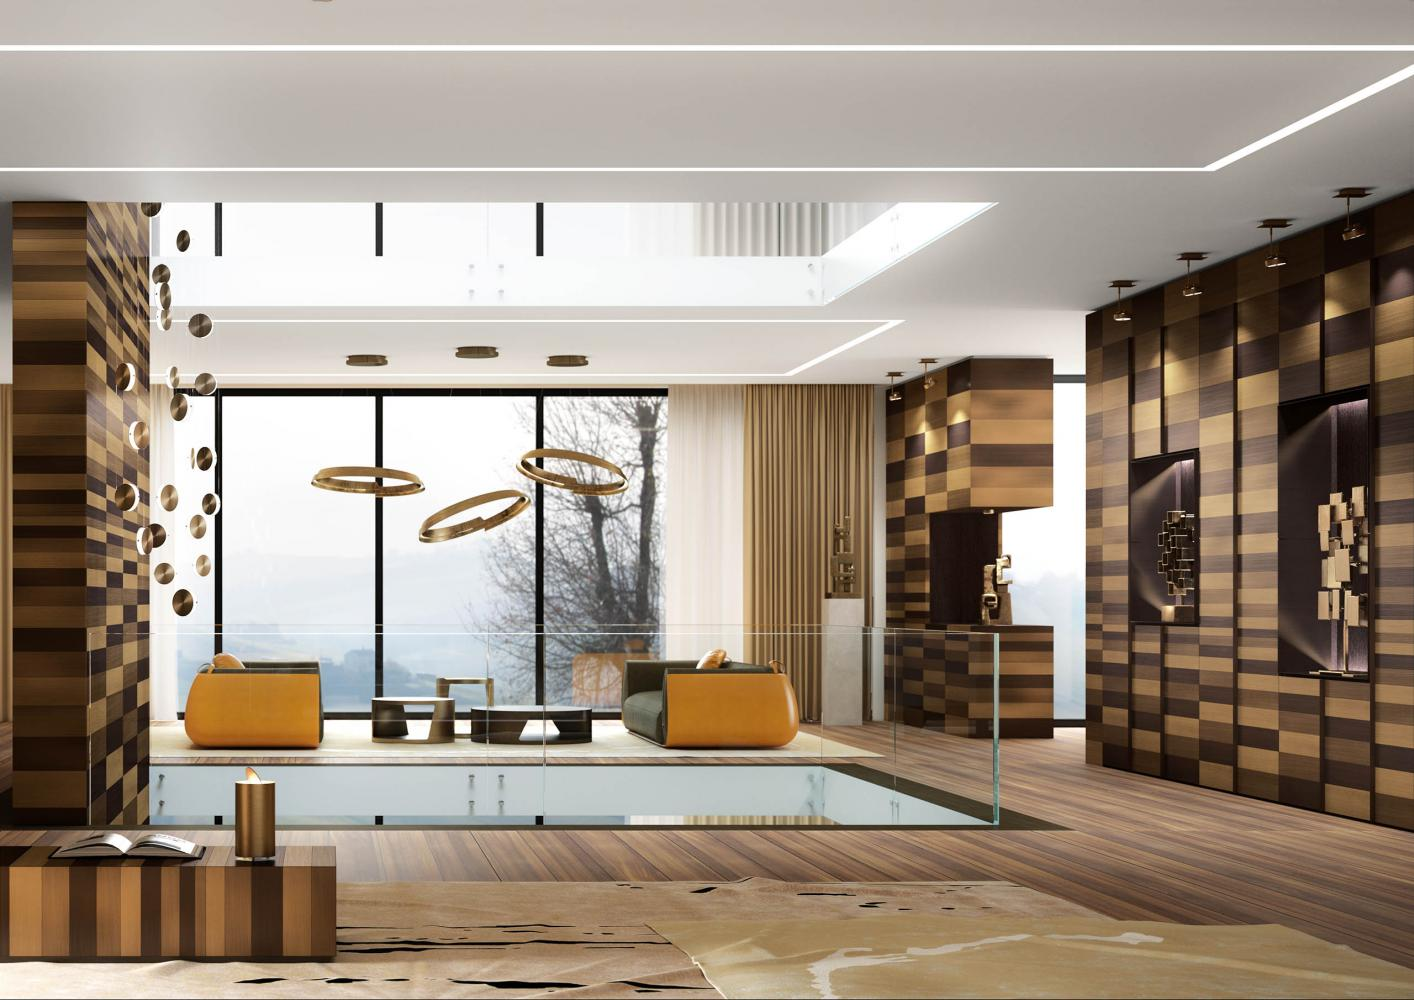 Laurameroni Stars Cabinet System made to measure artisanal, luxury day wardrobes in brass and copper metal stripes decoration